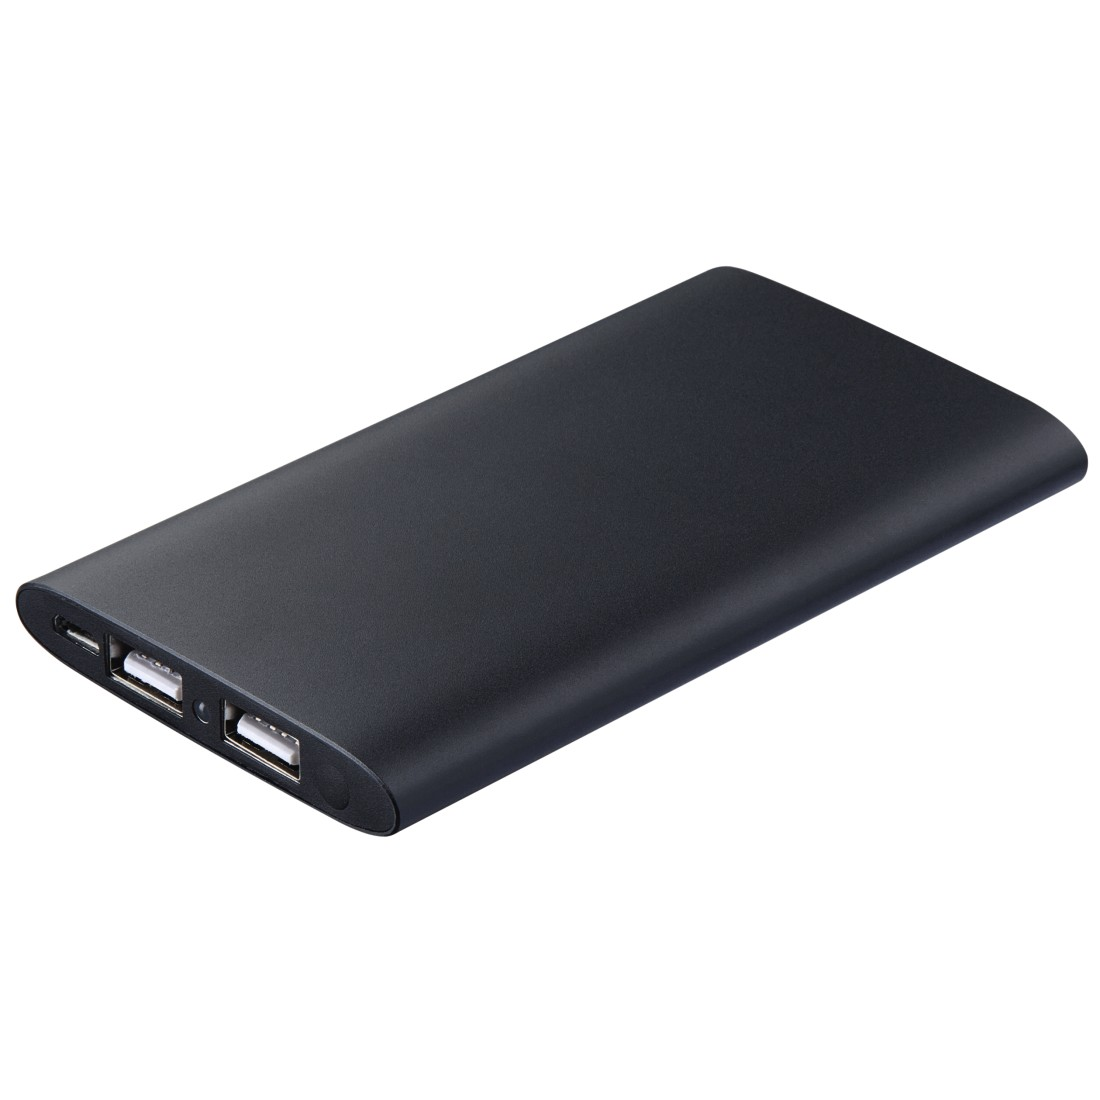 abx2 High-Res Image 2 - Hama, Power Pack Premium Alu, 5 000 mAh, anthracite